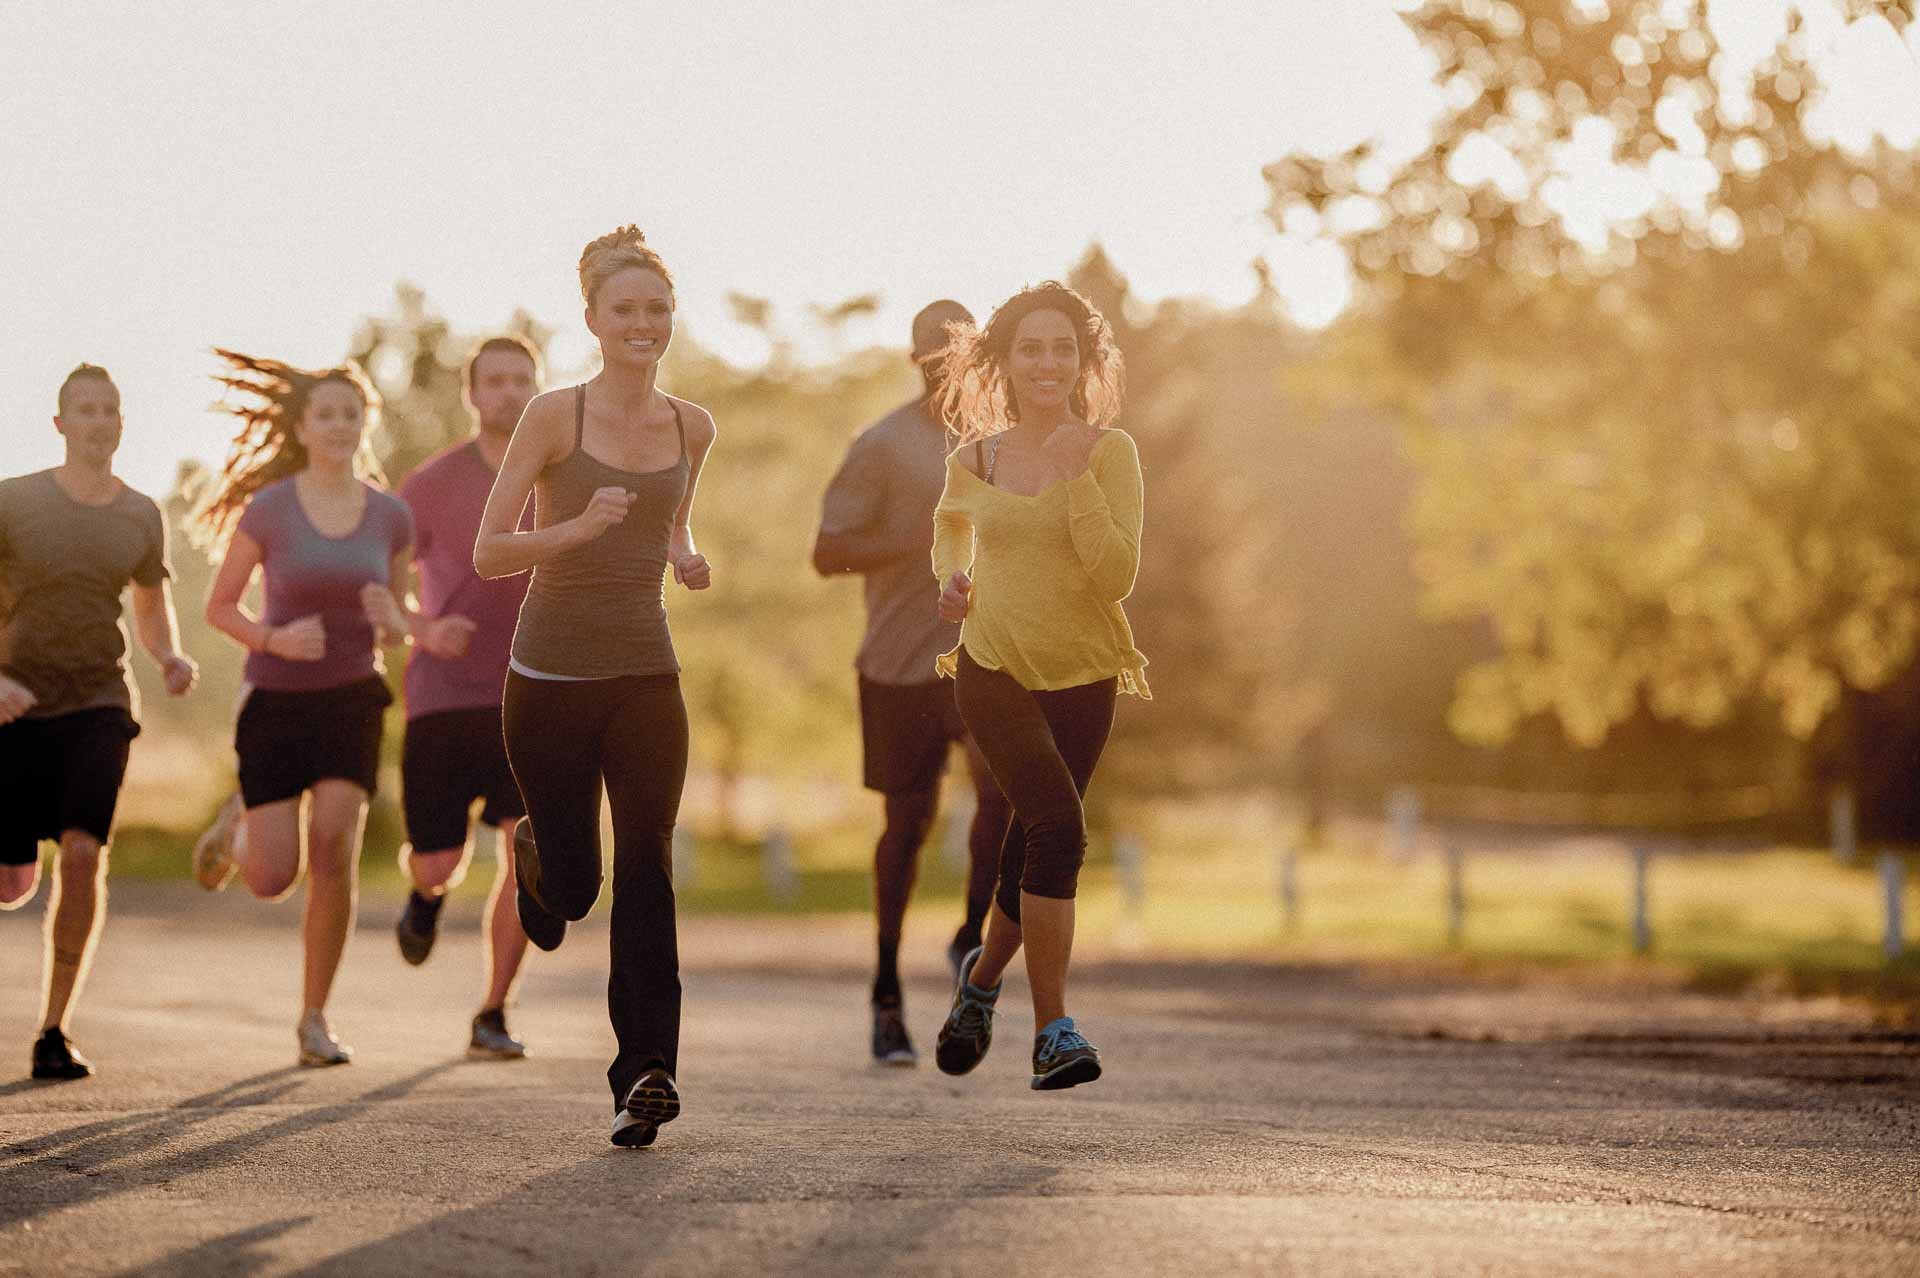 Long runs, or how to run 20km with fun and without injury